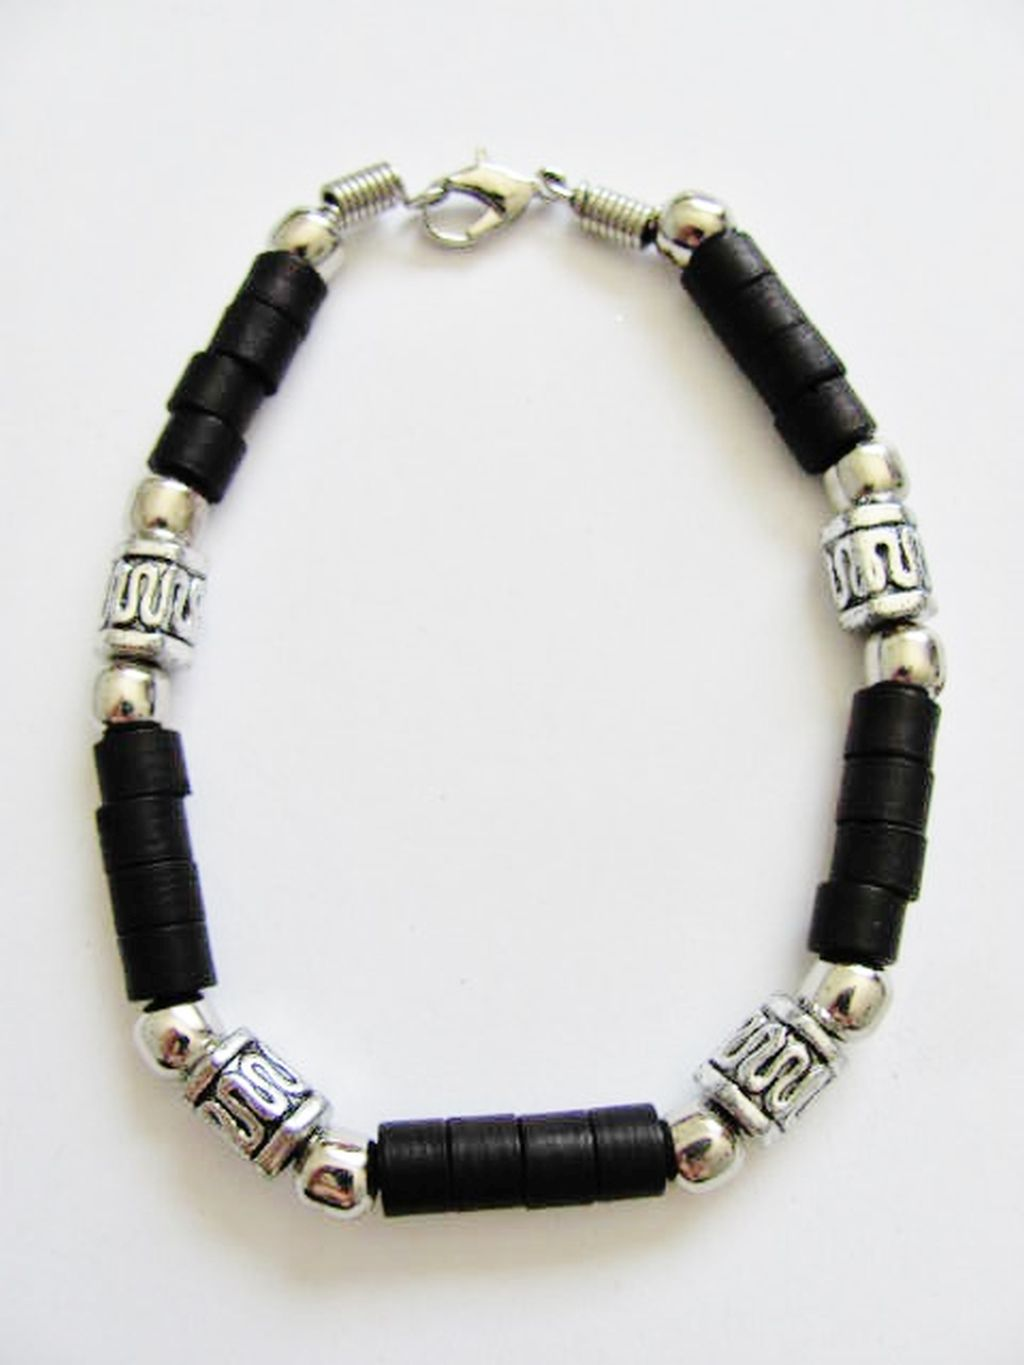 Cancun Hot Chrome/Extreme Brown Men's Bead Bracelet, Surfer Style